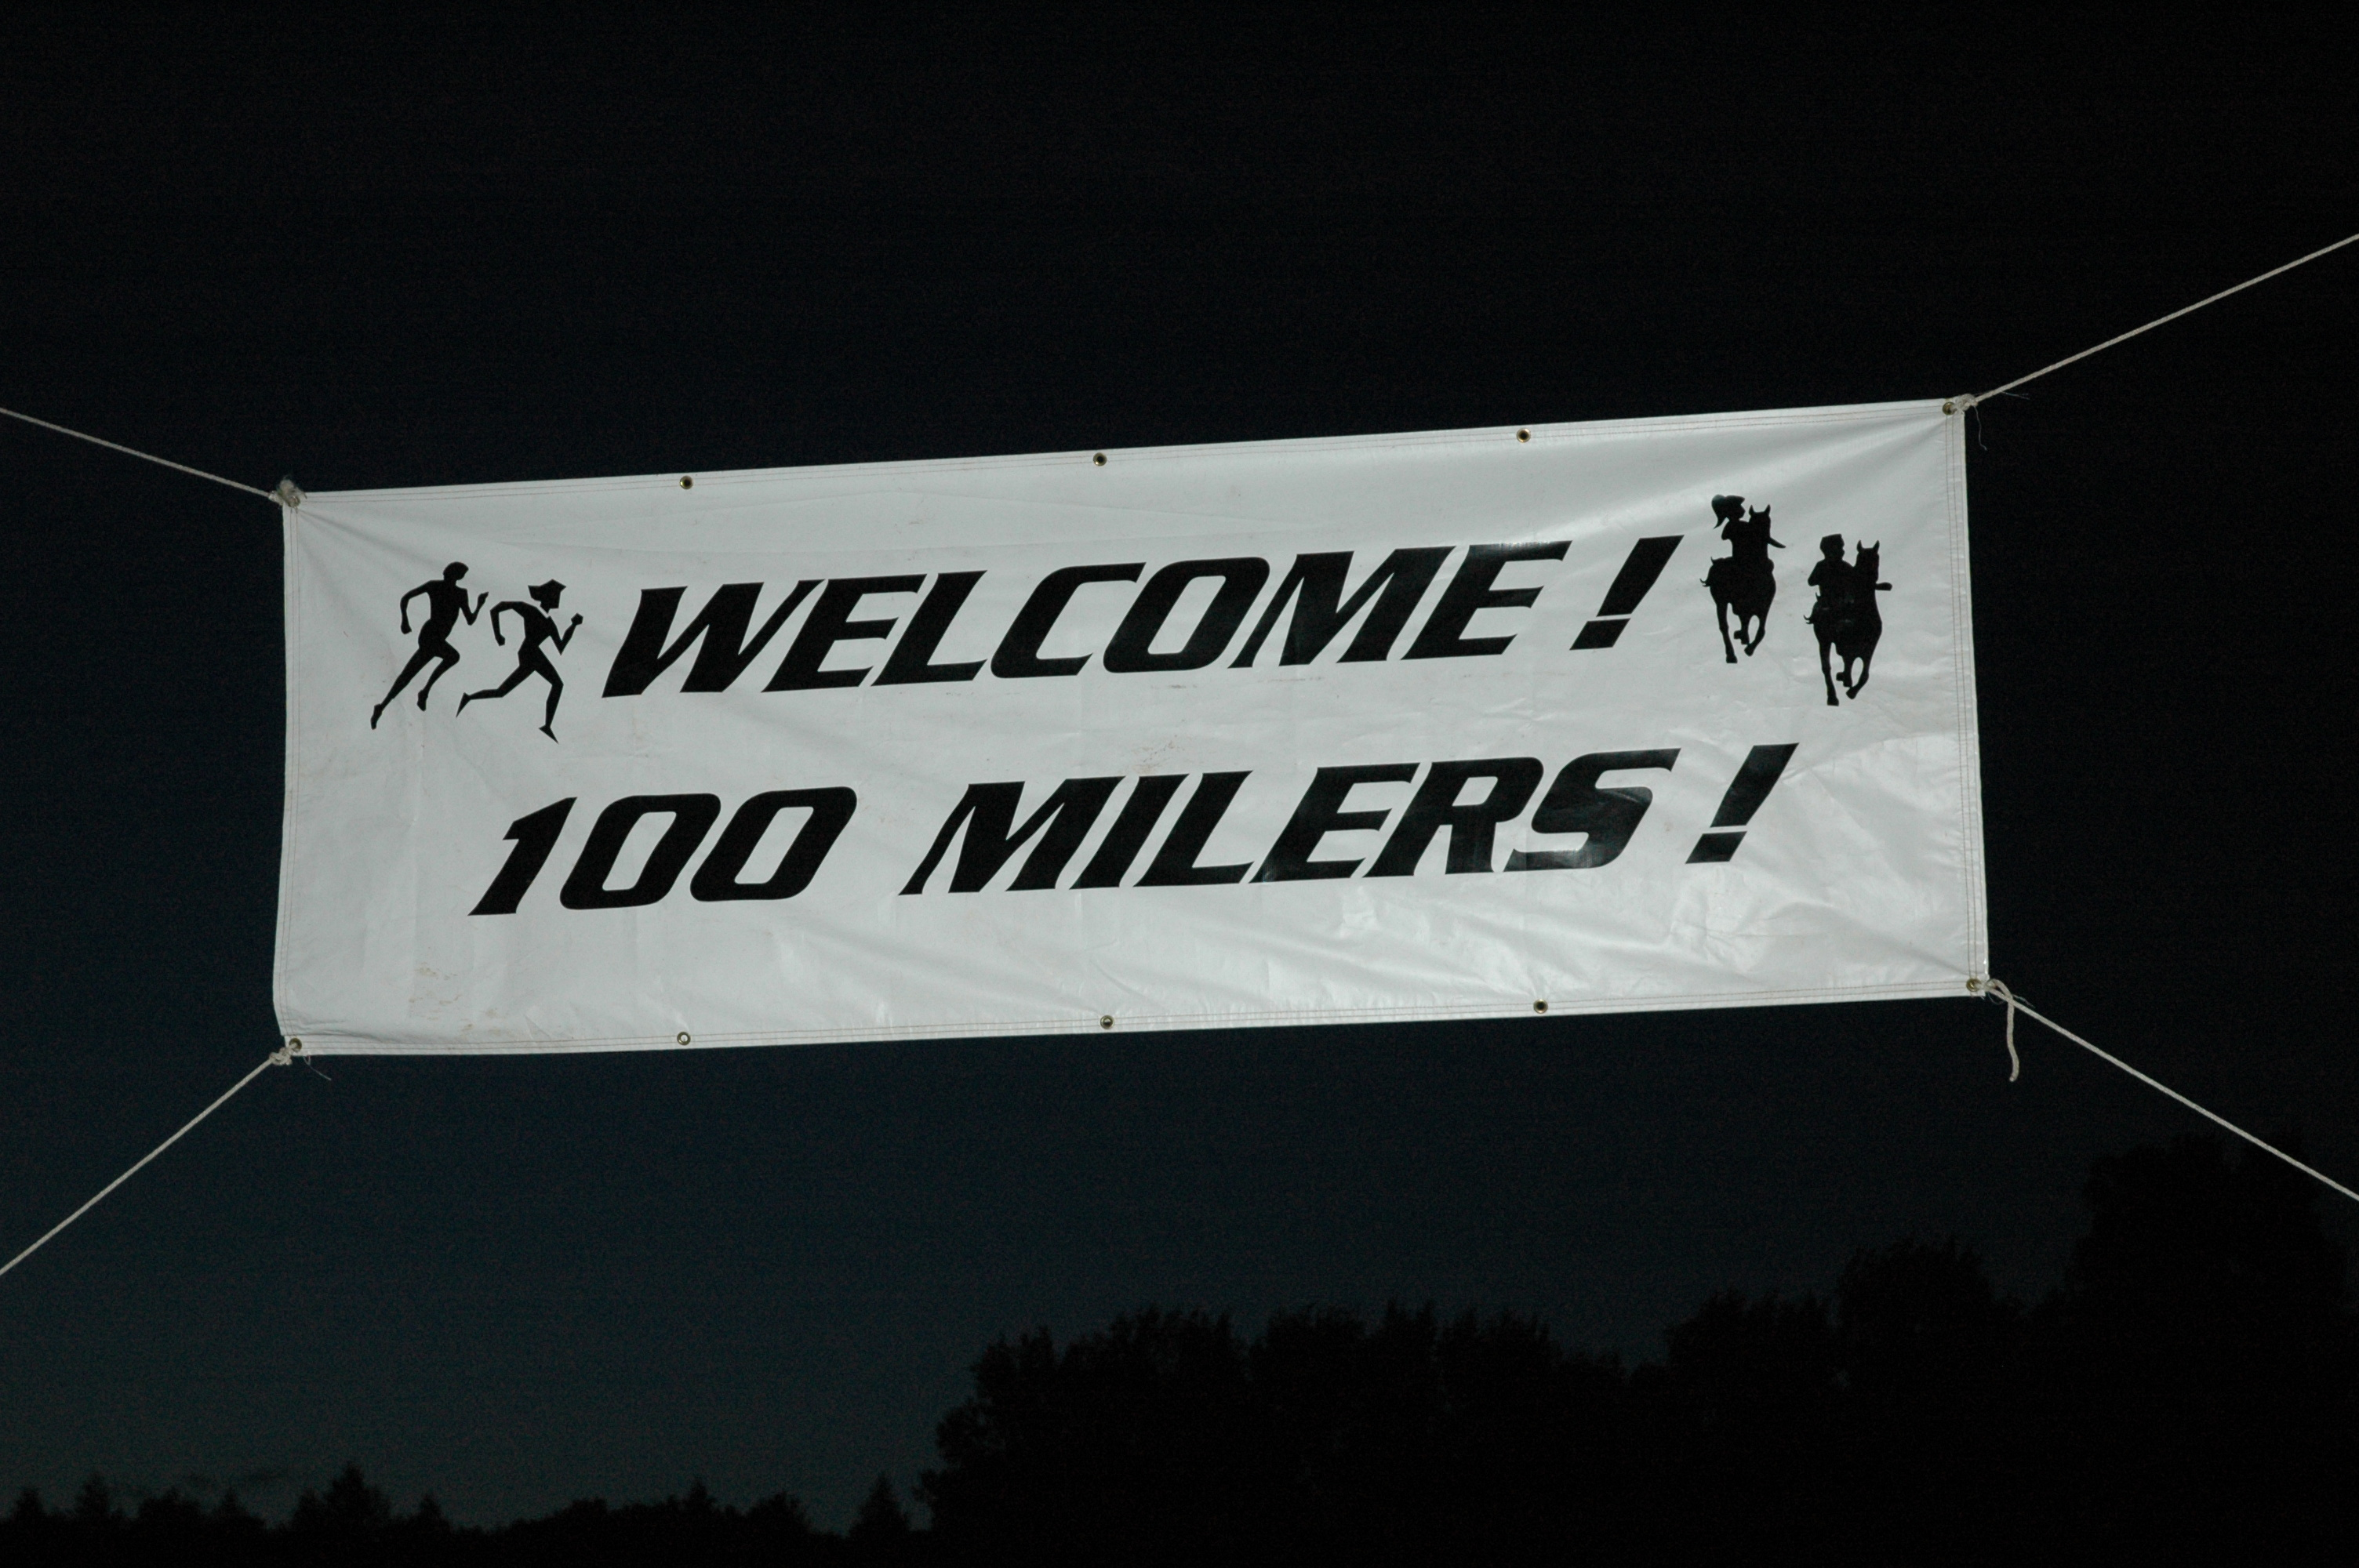 Choosing Your First 100 Miler